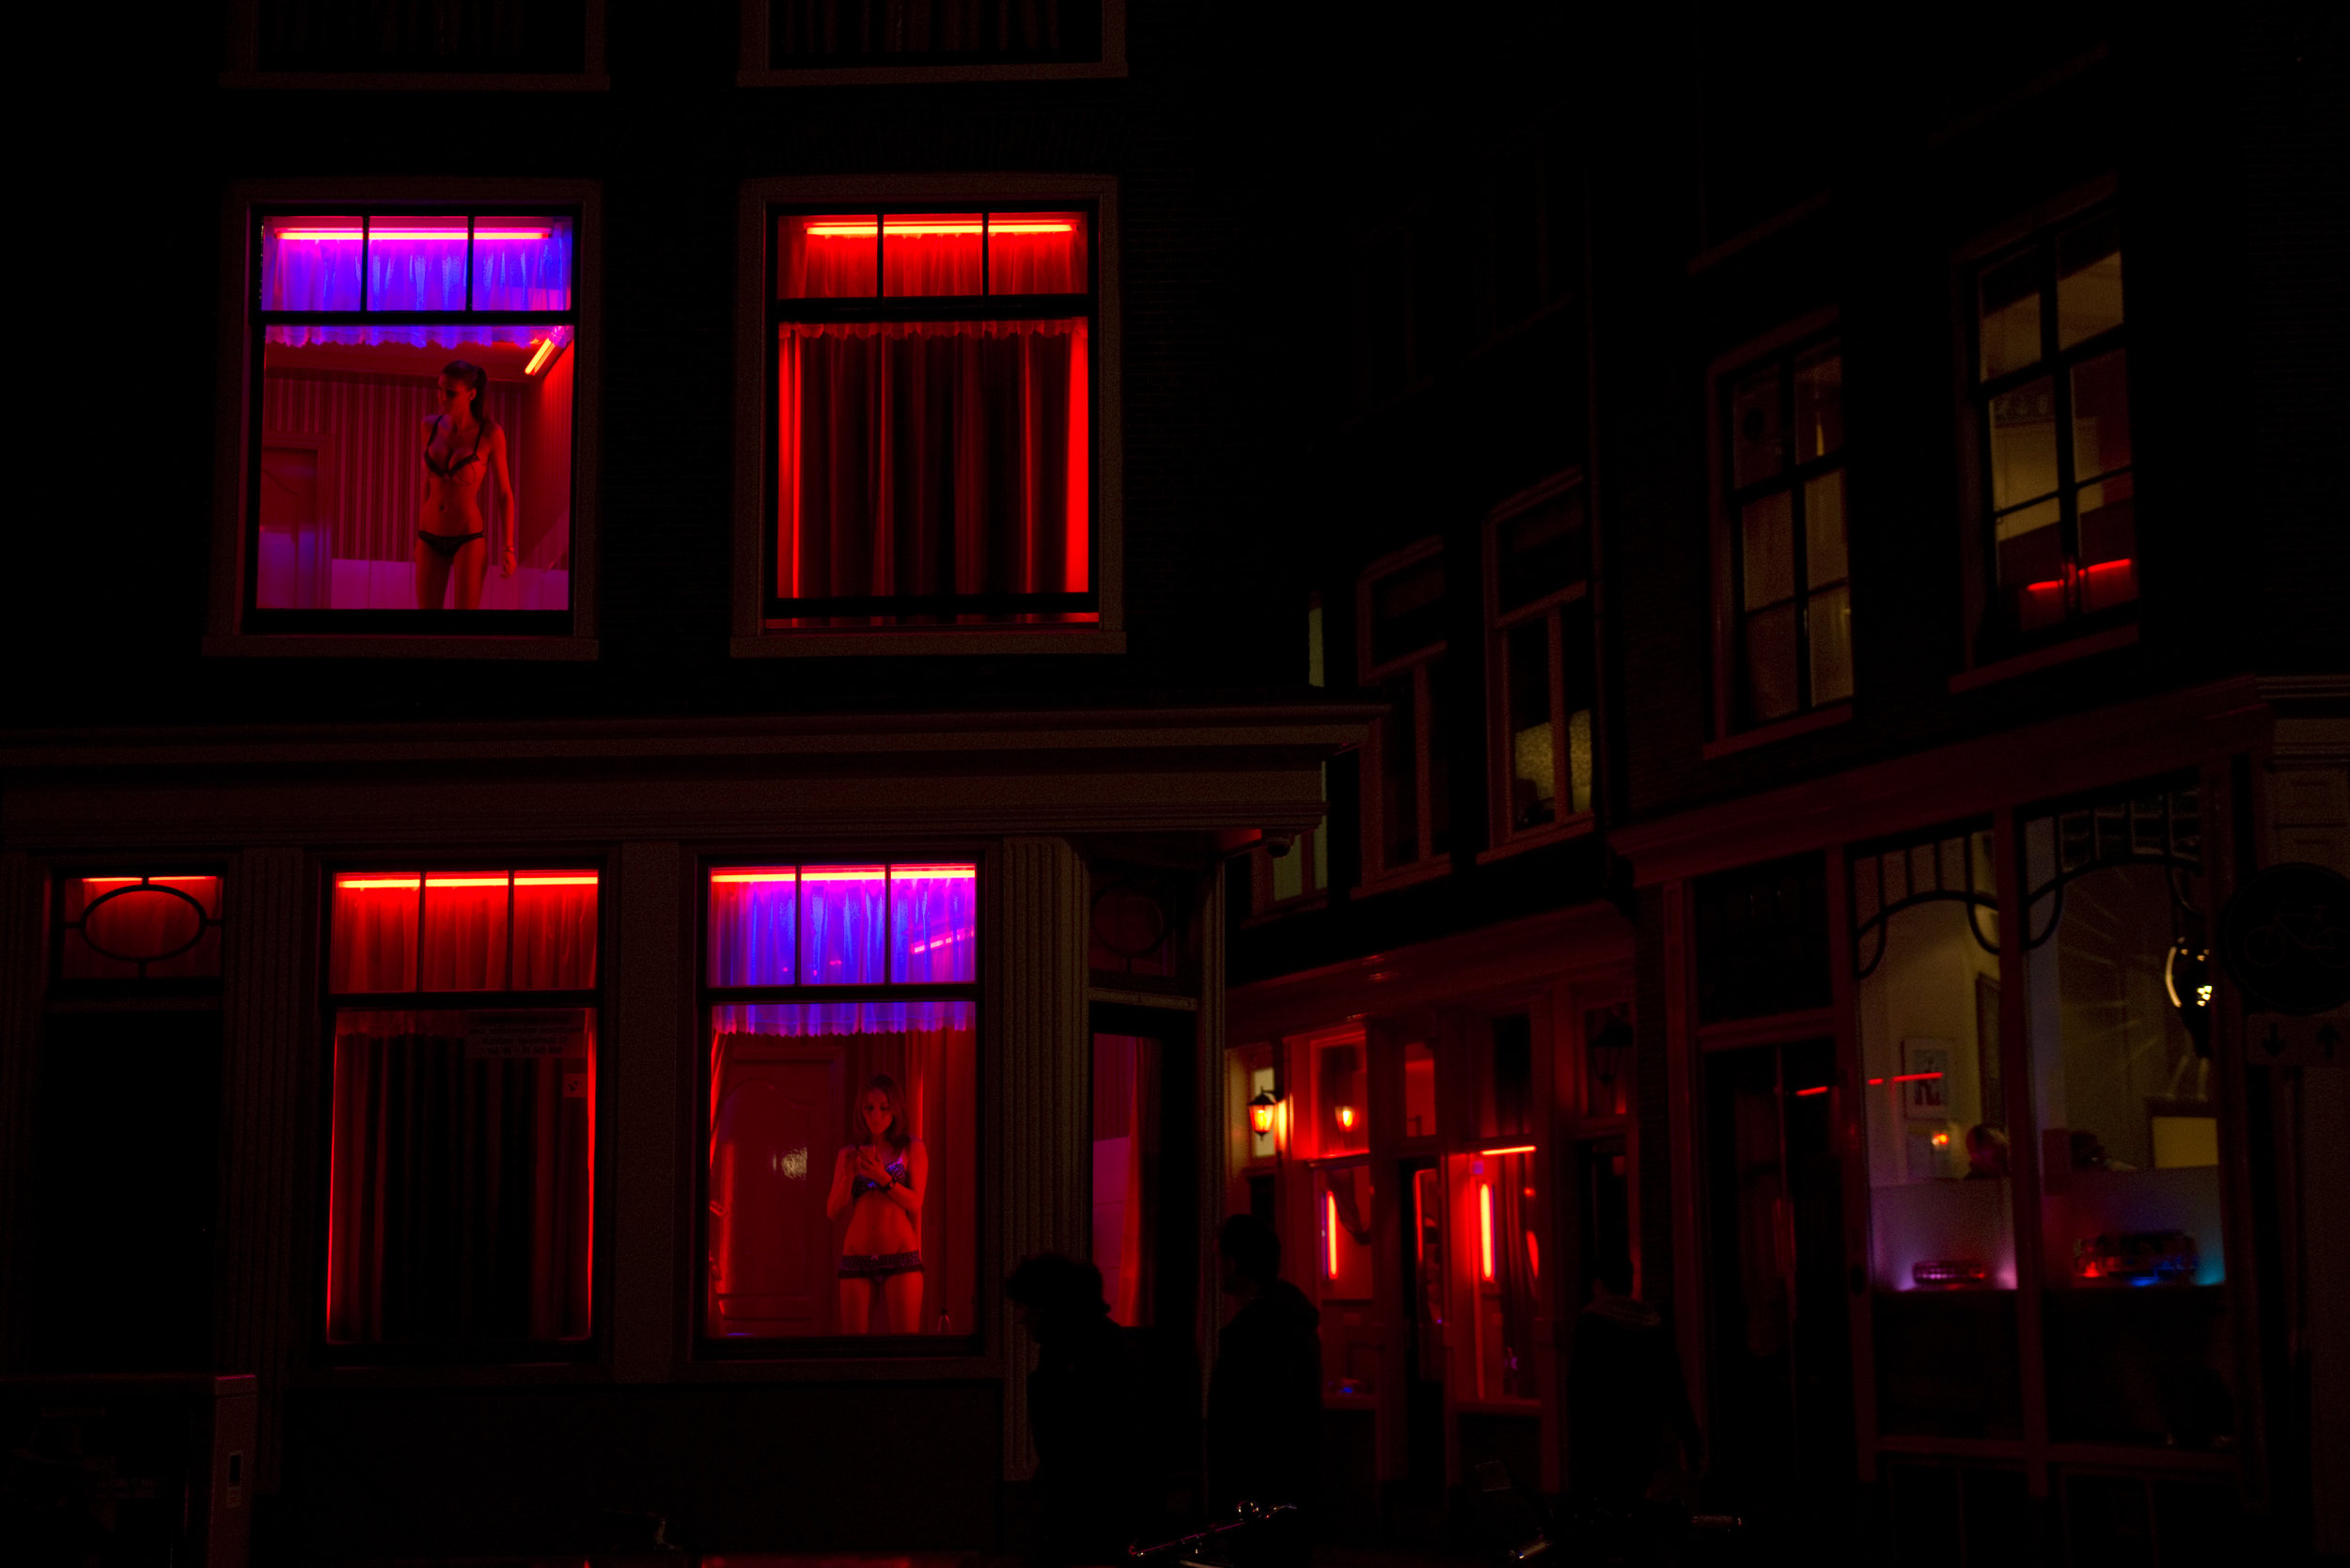 Two workers renting out rooms in Amsterdam's Red Light District,  De Wallen , wait for customers during the night. Prostitution is legal and strictly regulated in the Netherlands.